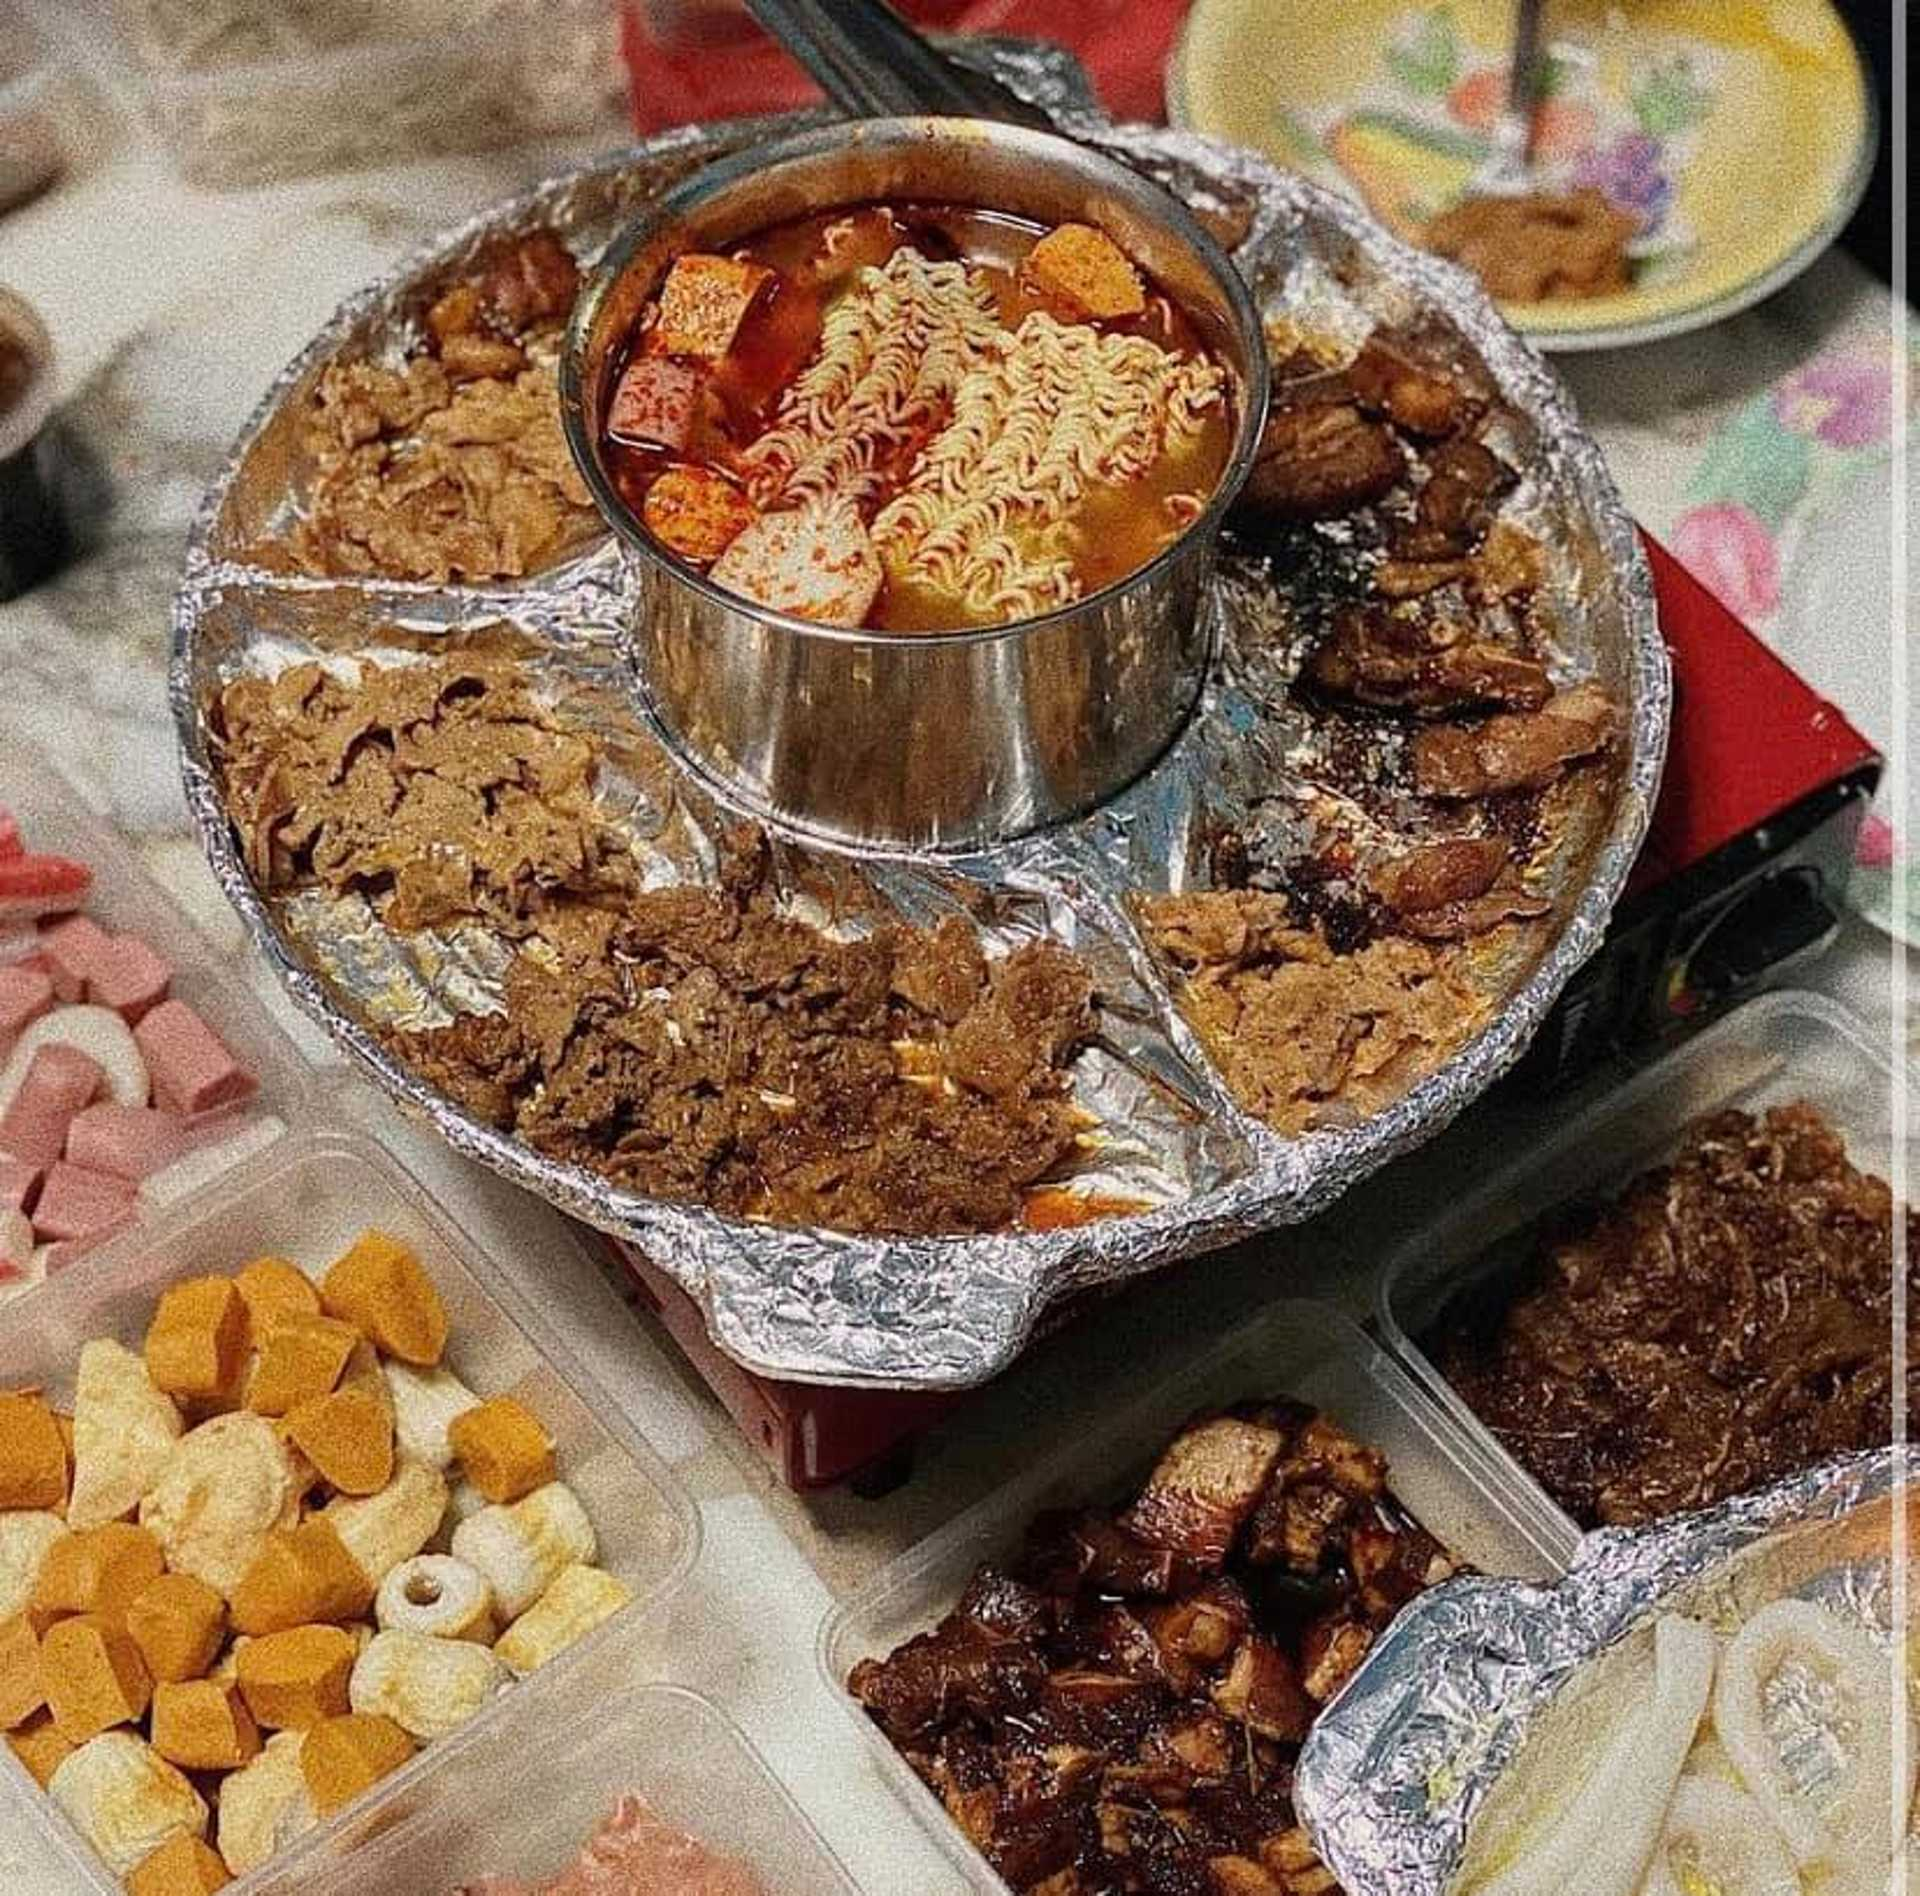 halal steamboat delivery